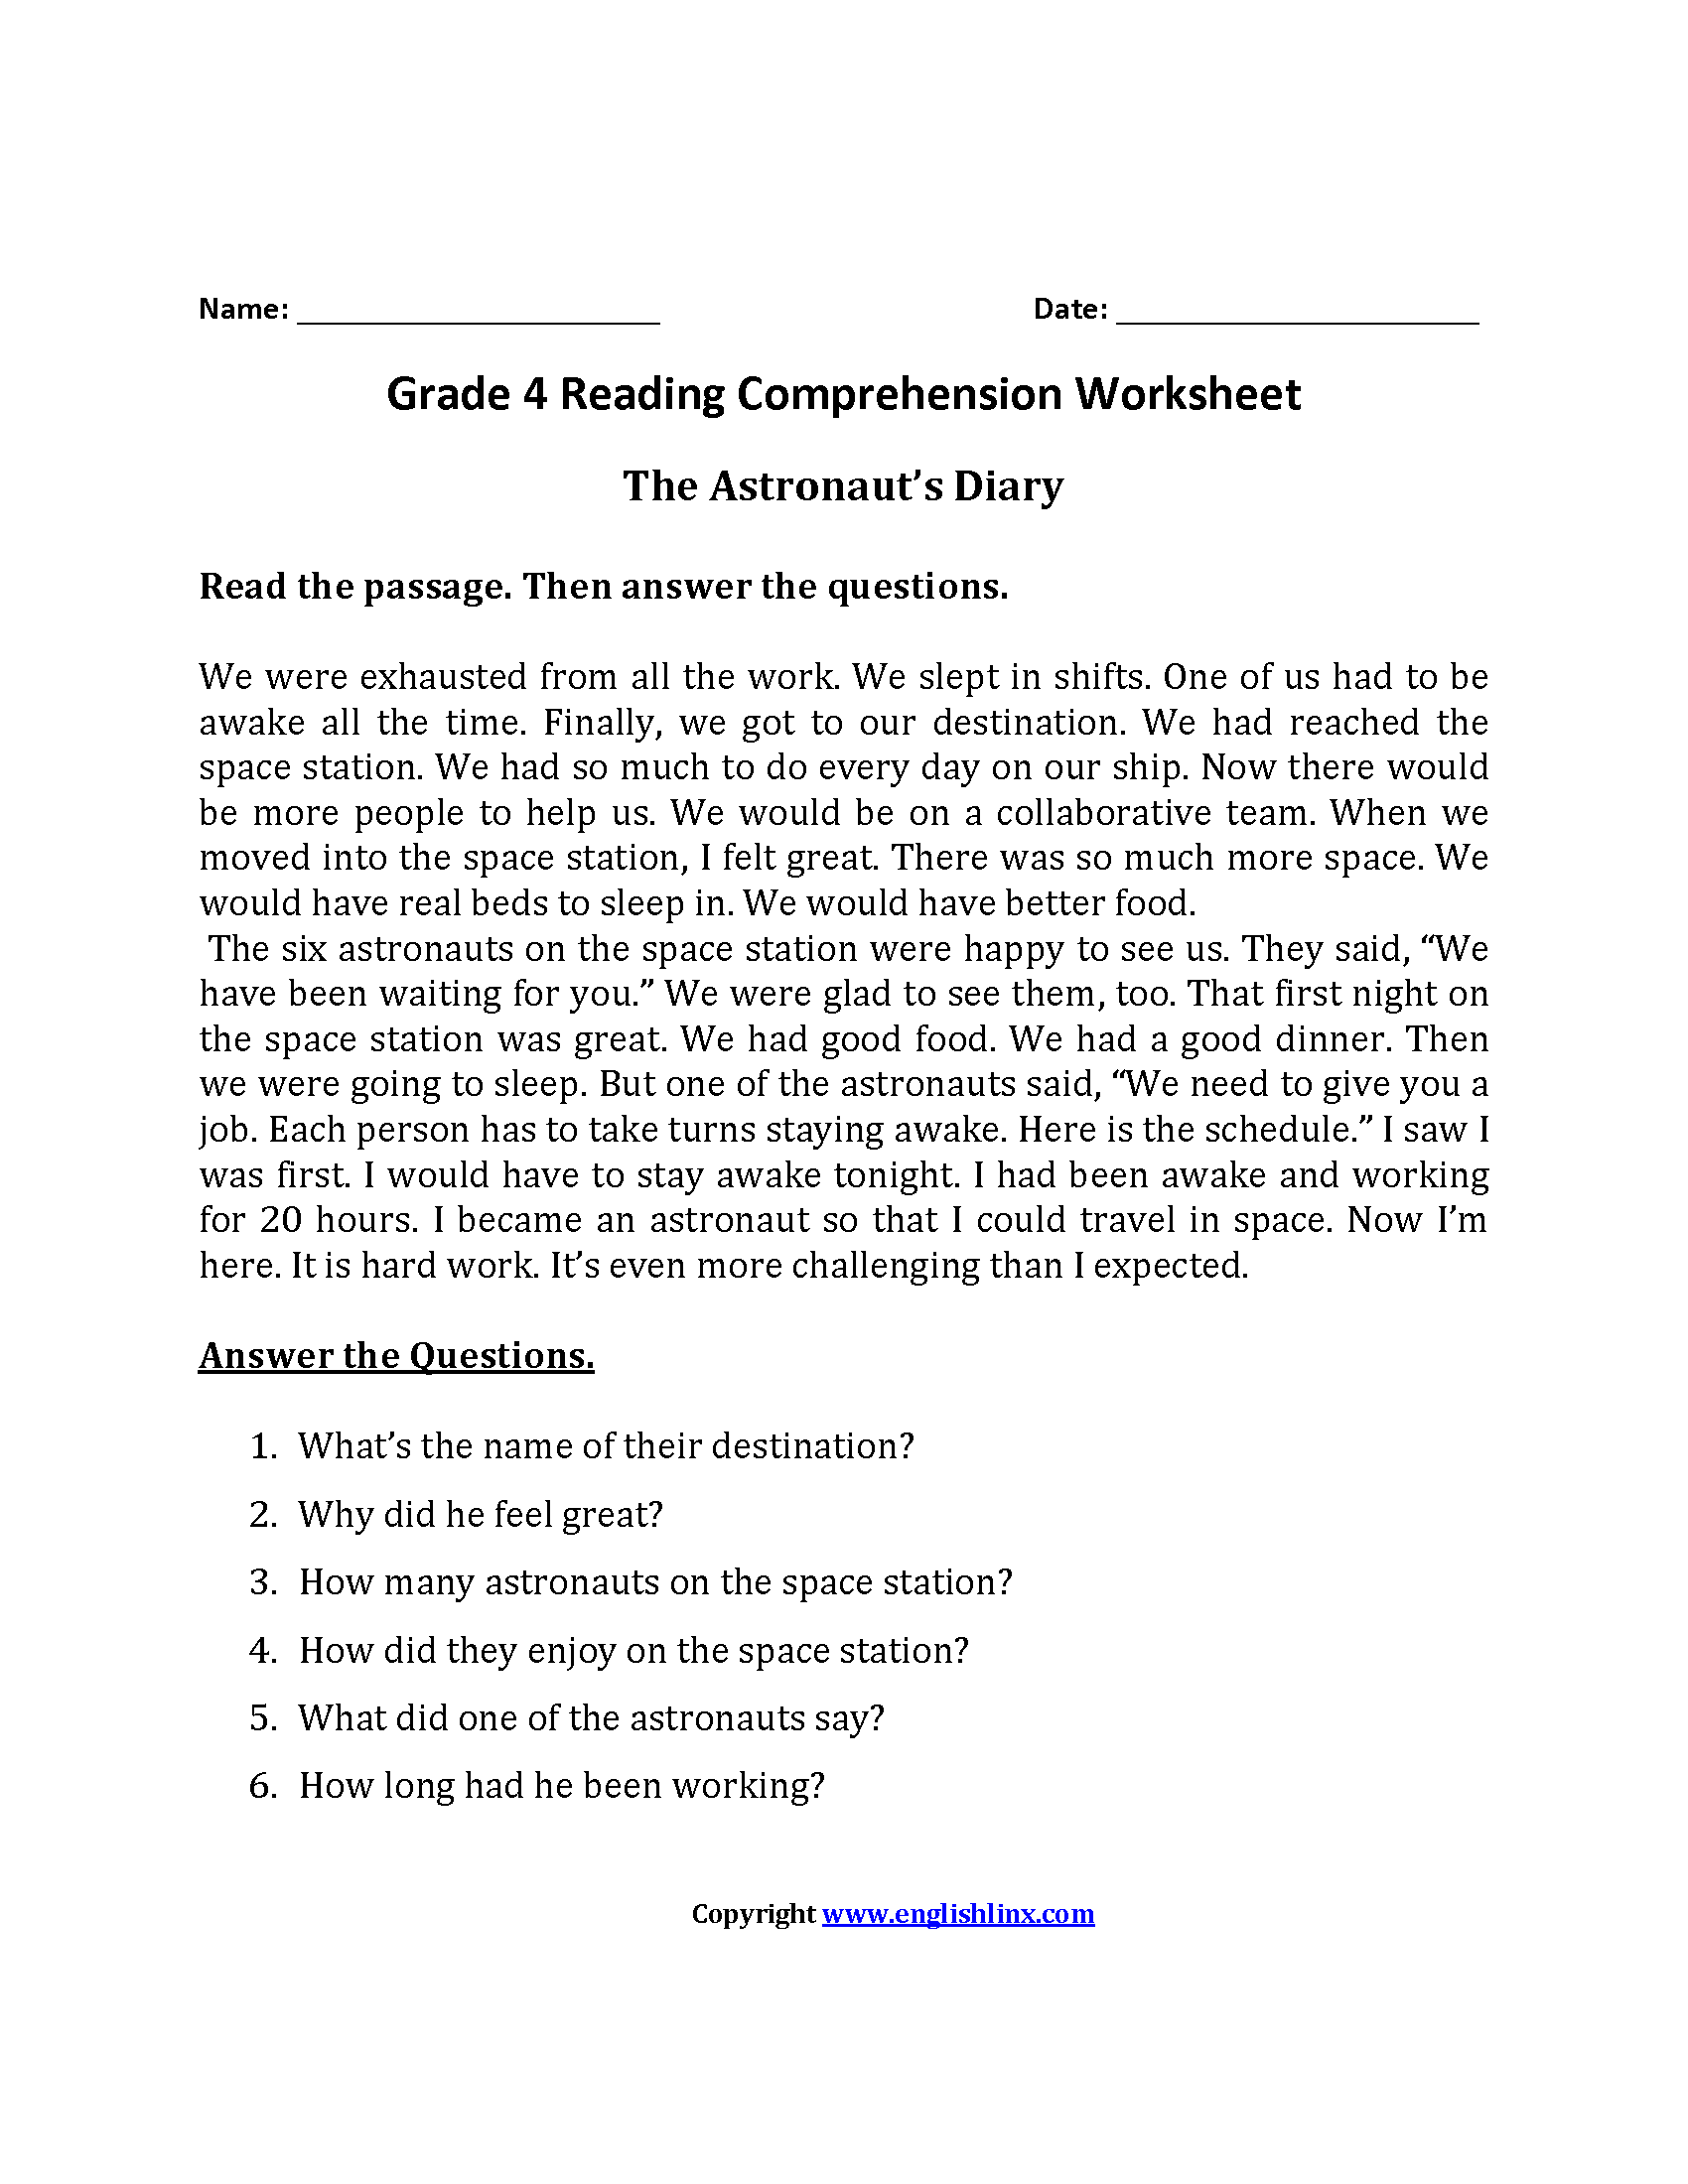 Worksheets Reading Worksheets 4th Grade english worksheets reading fourth grade worksheets